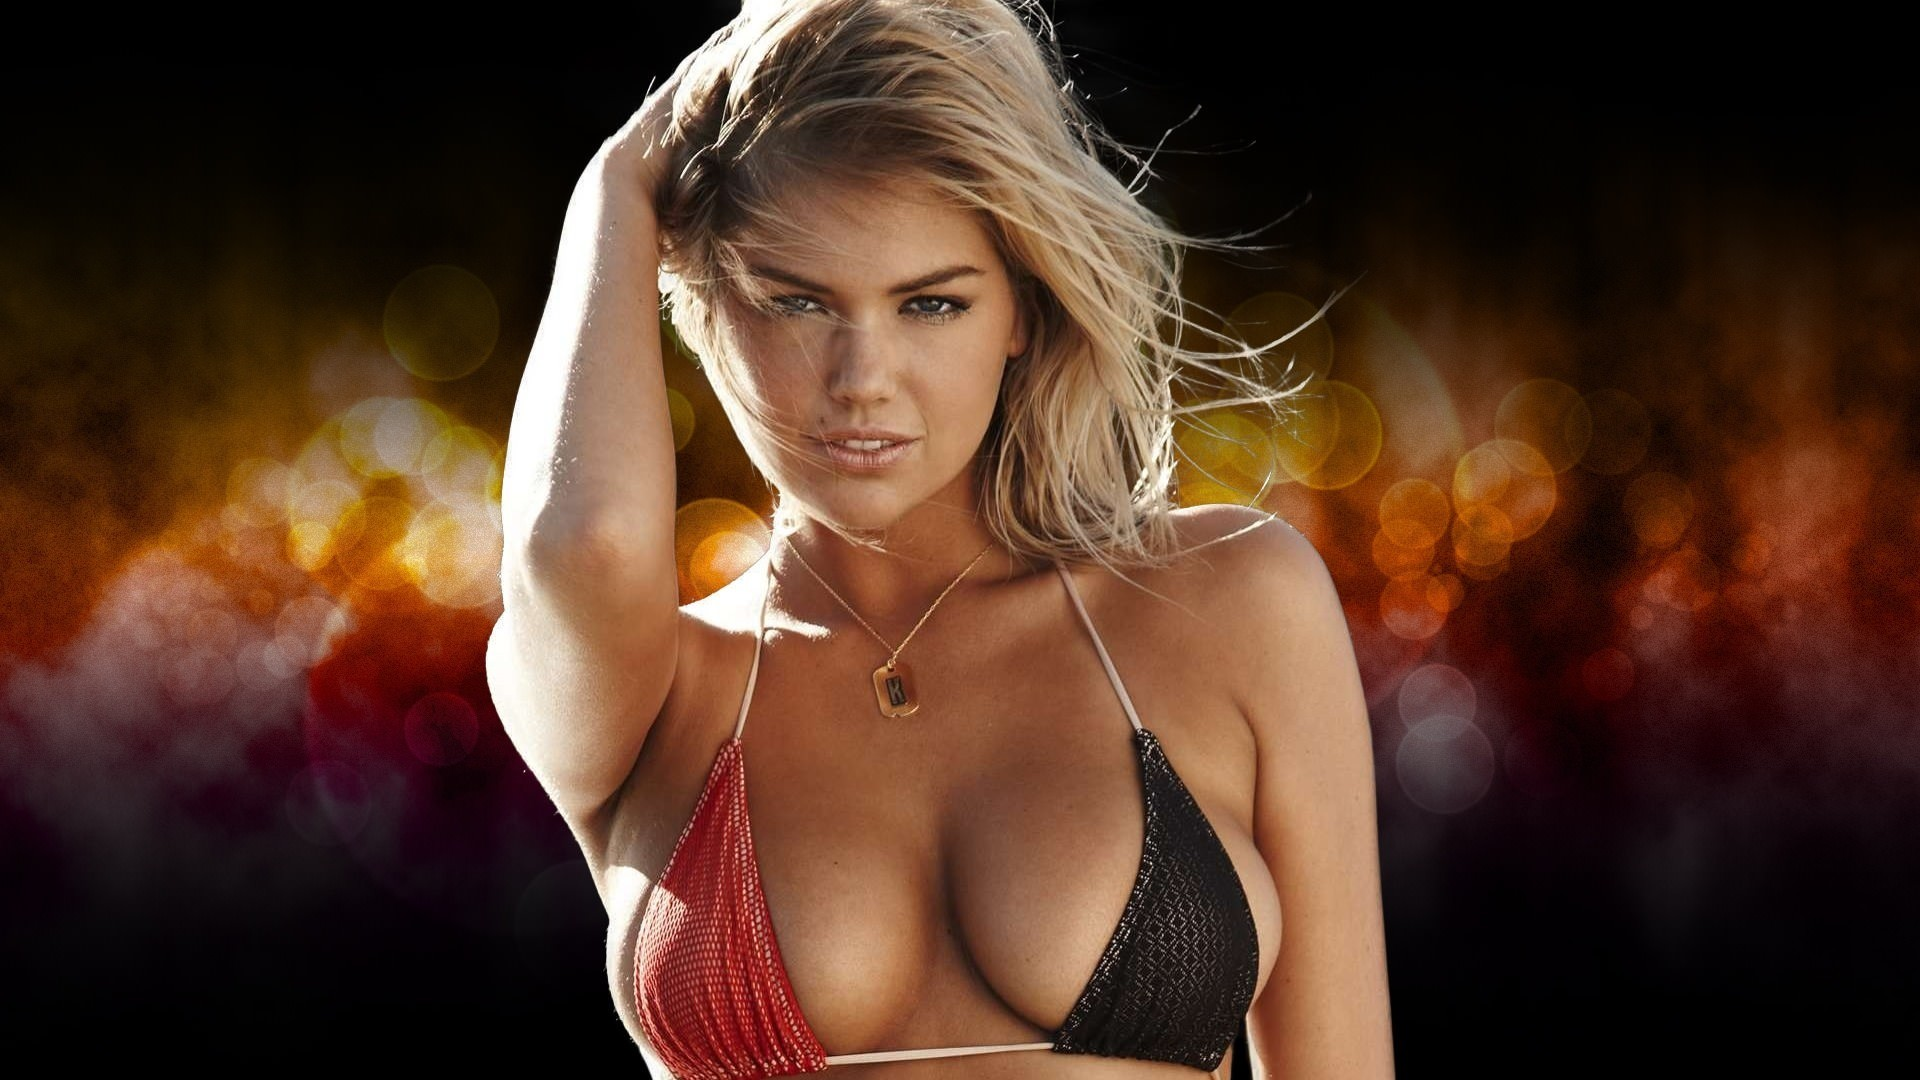 Kate Upton Latest HD Wallpapers Free Download